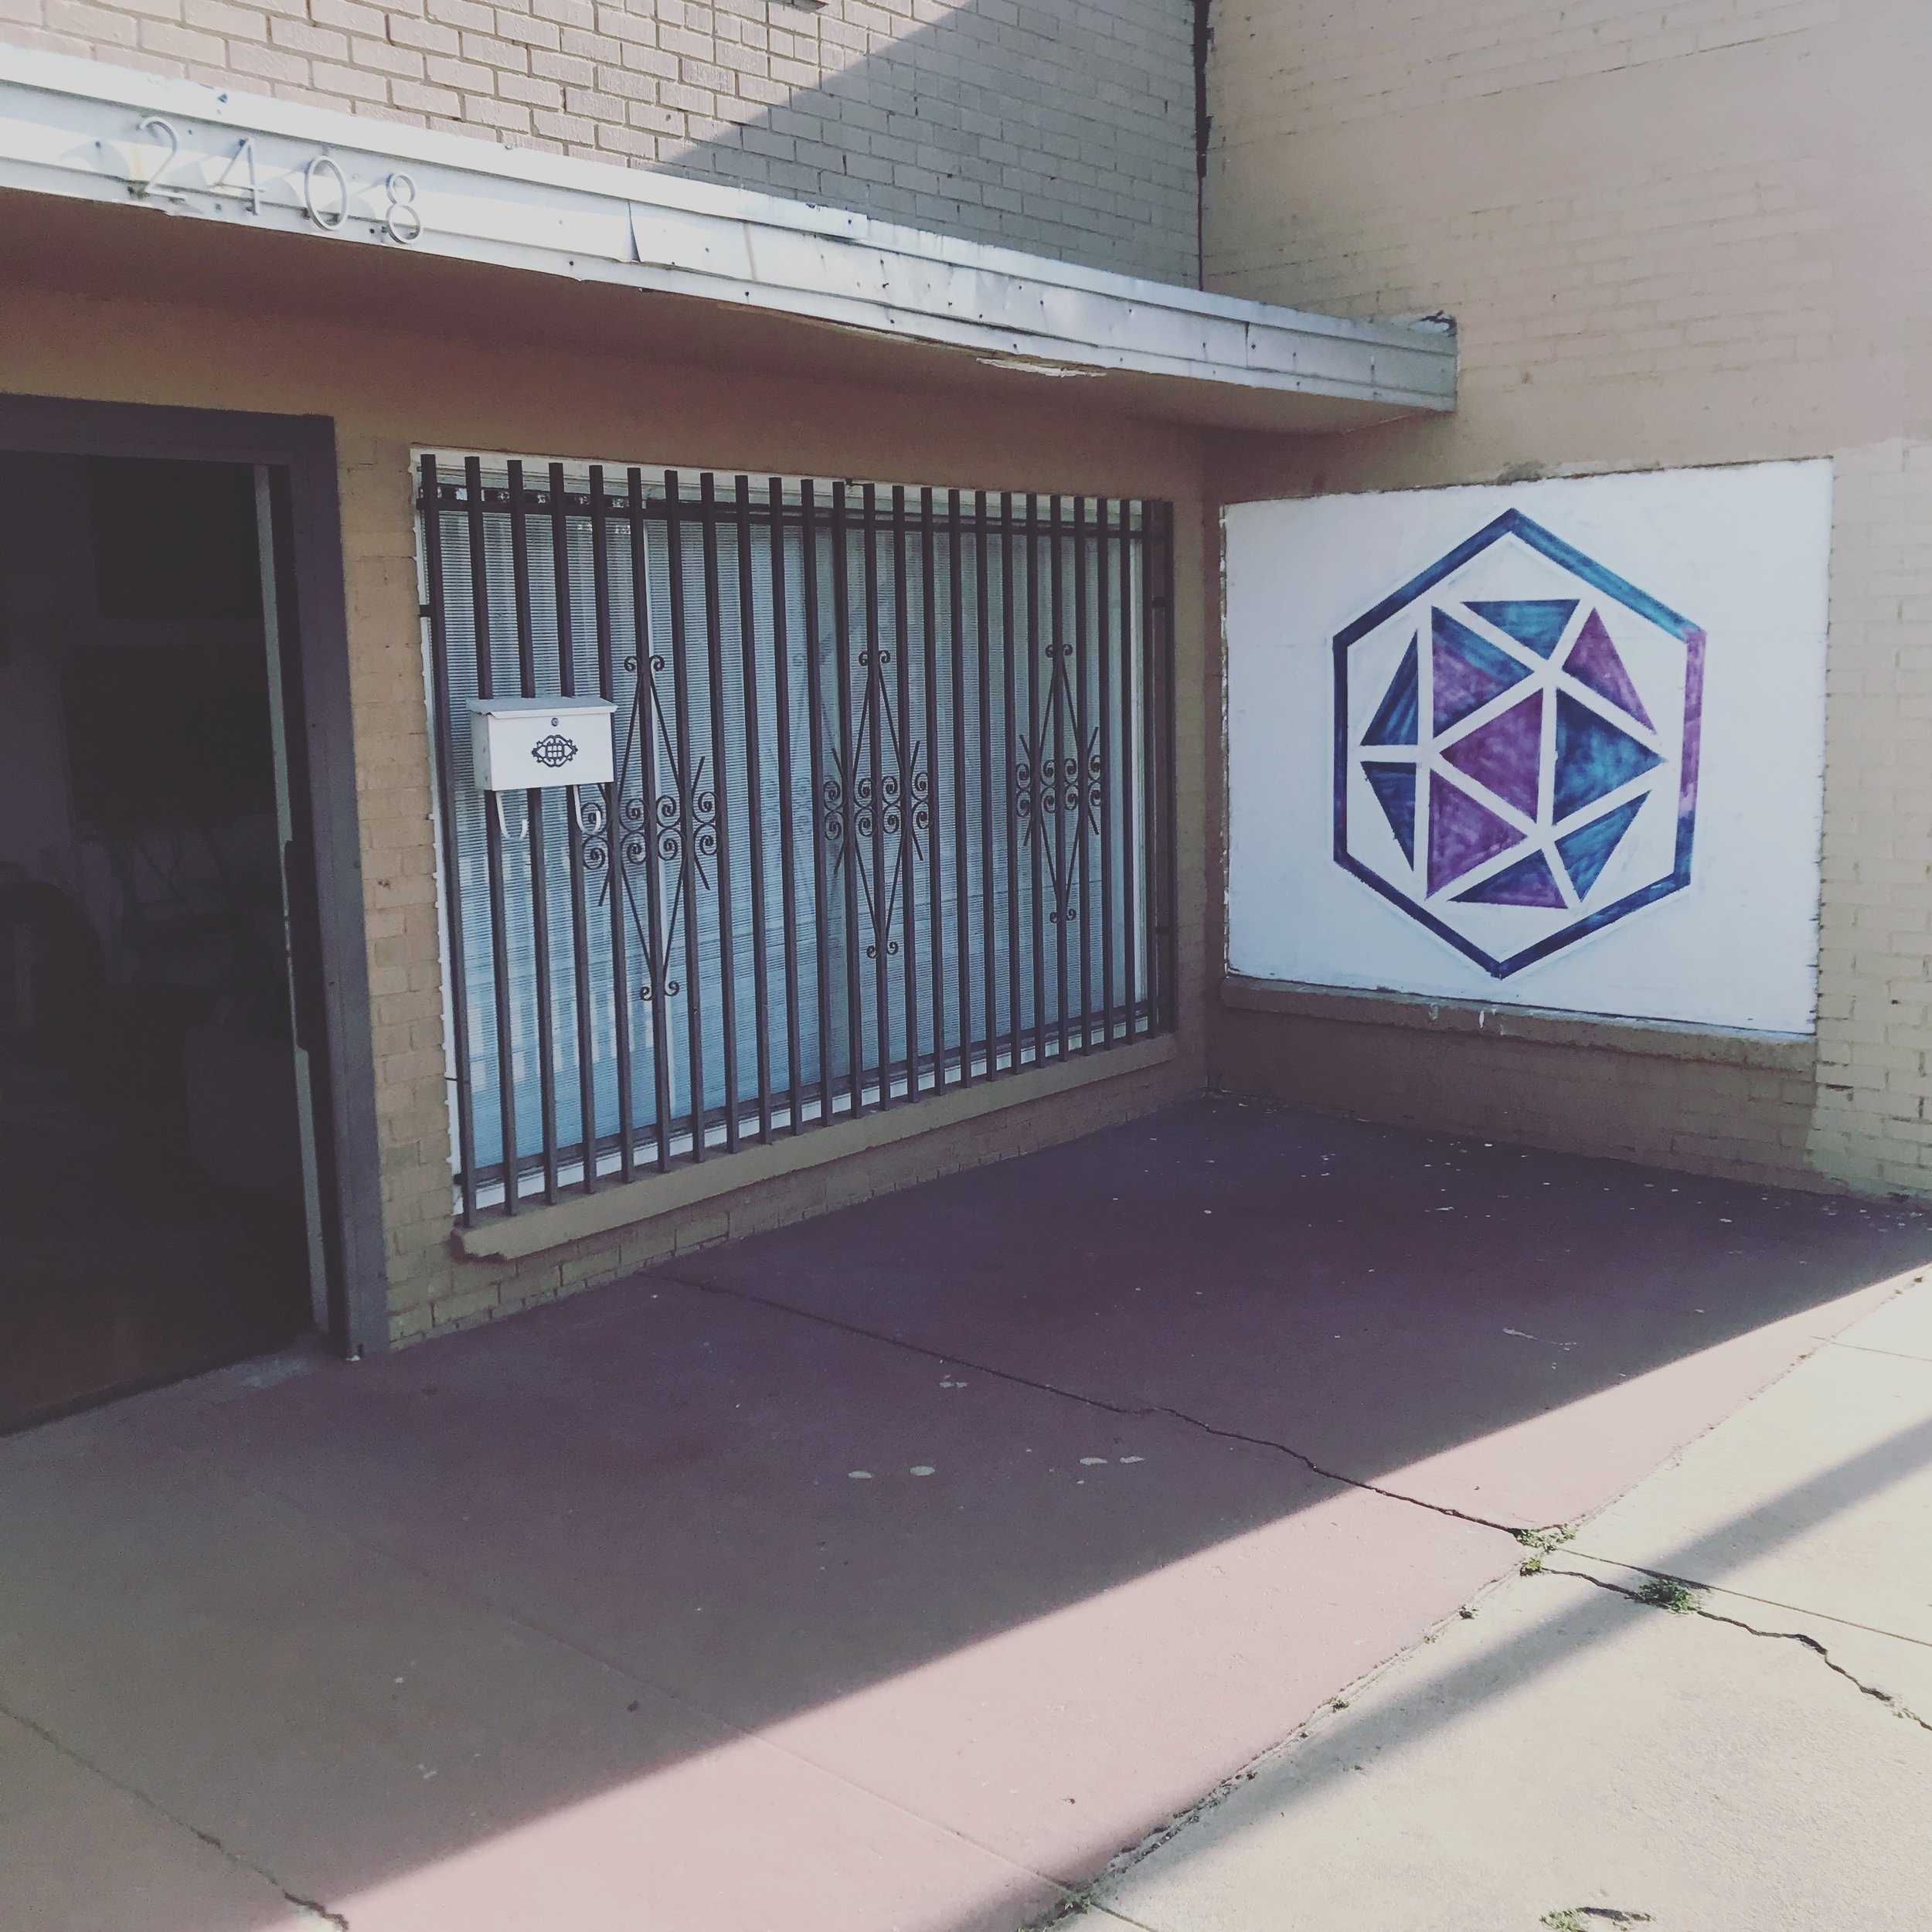 Main entrance to Ascension Artist Studio located at 2408 Texas Ave. El Paso, TX 79930